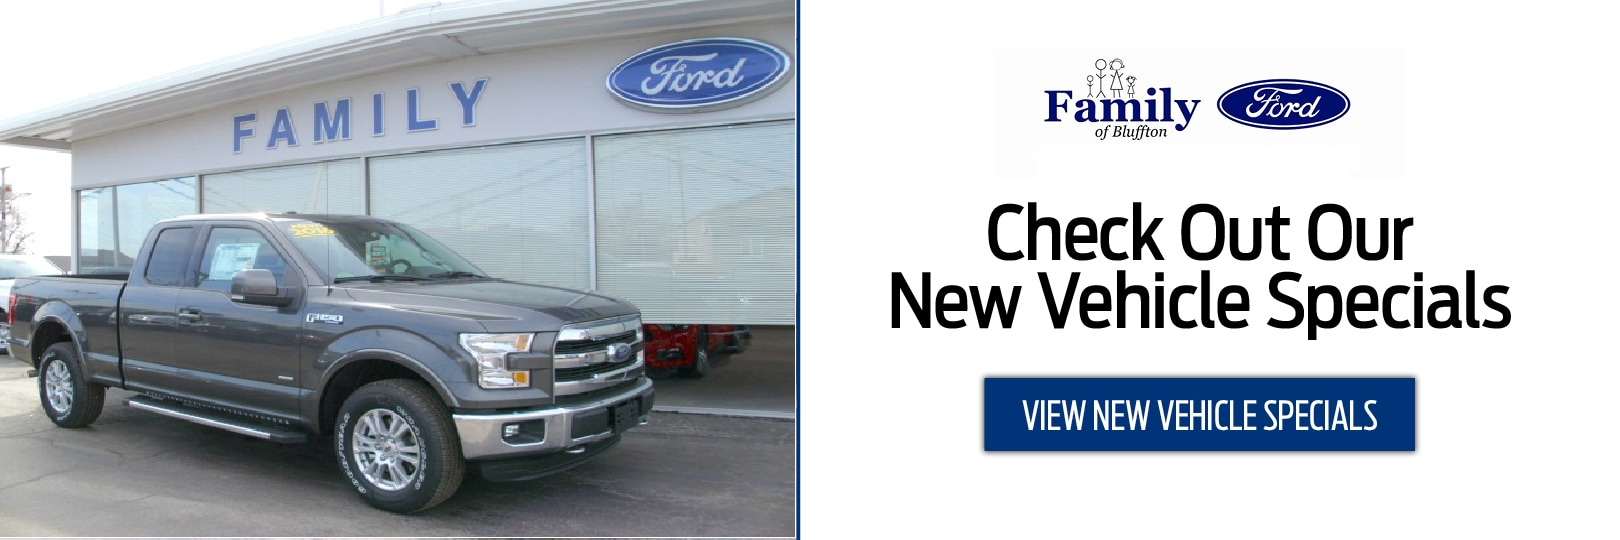 Family Ford of Bluffton   Ford Dealership in Bluffton IN